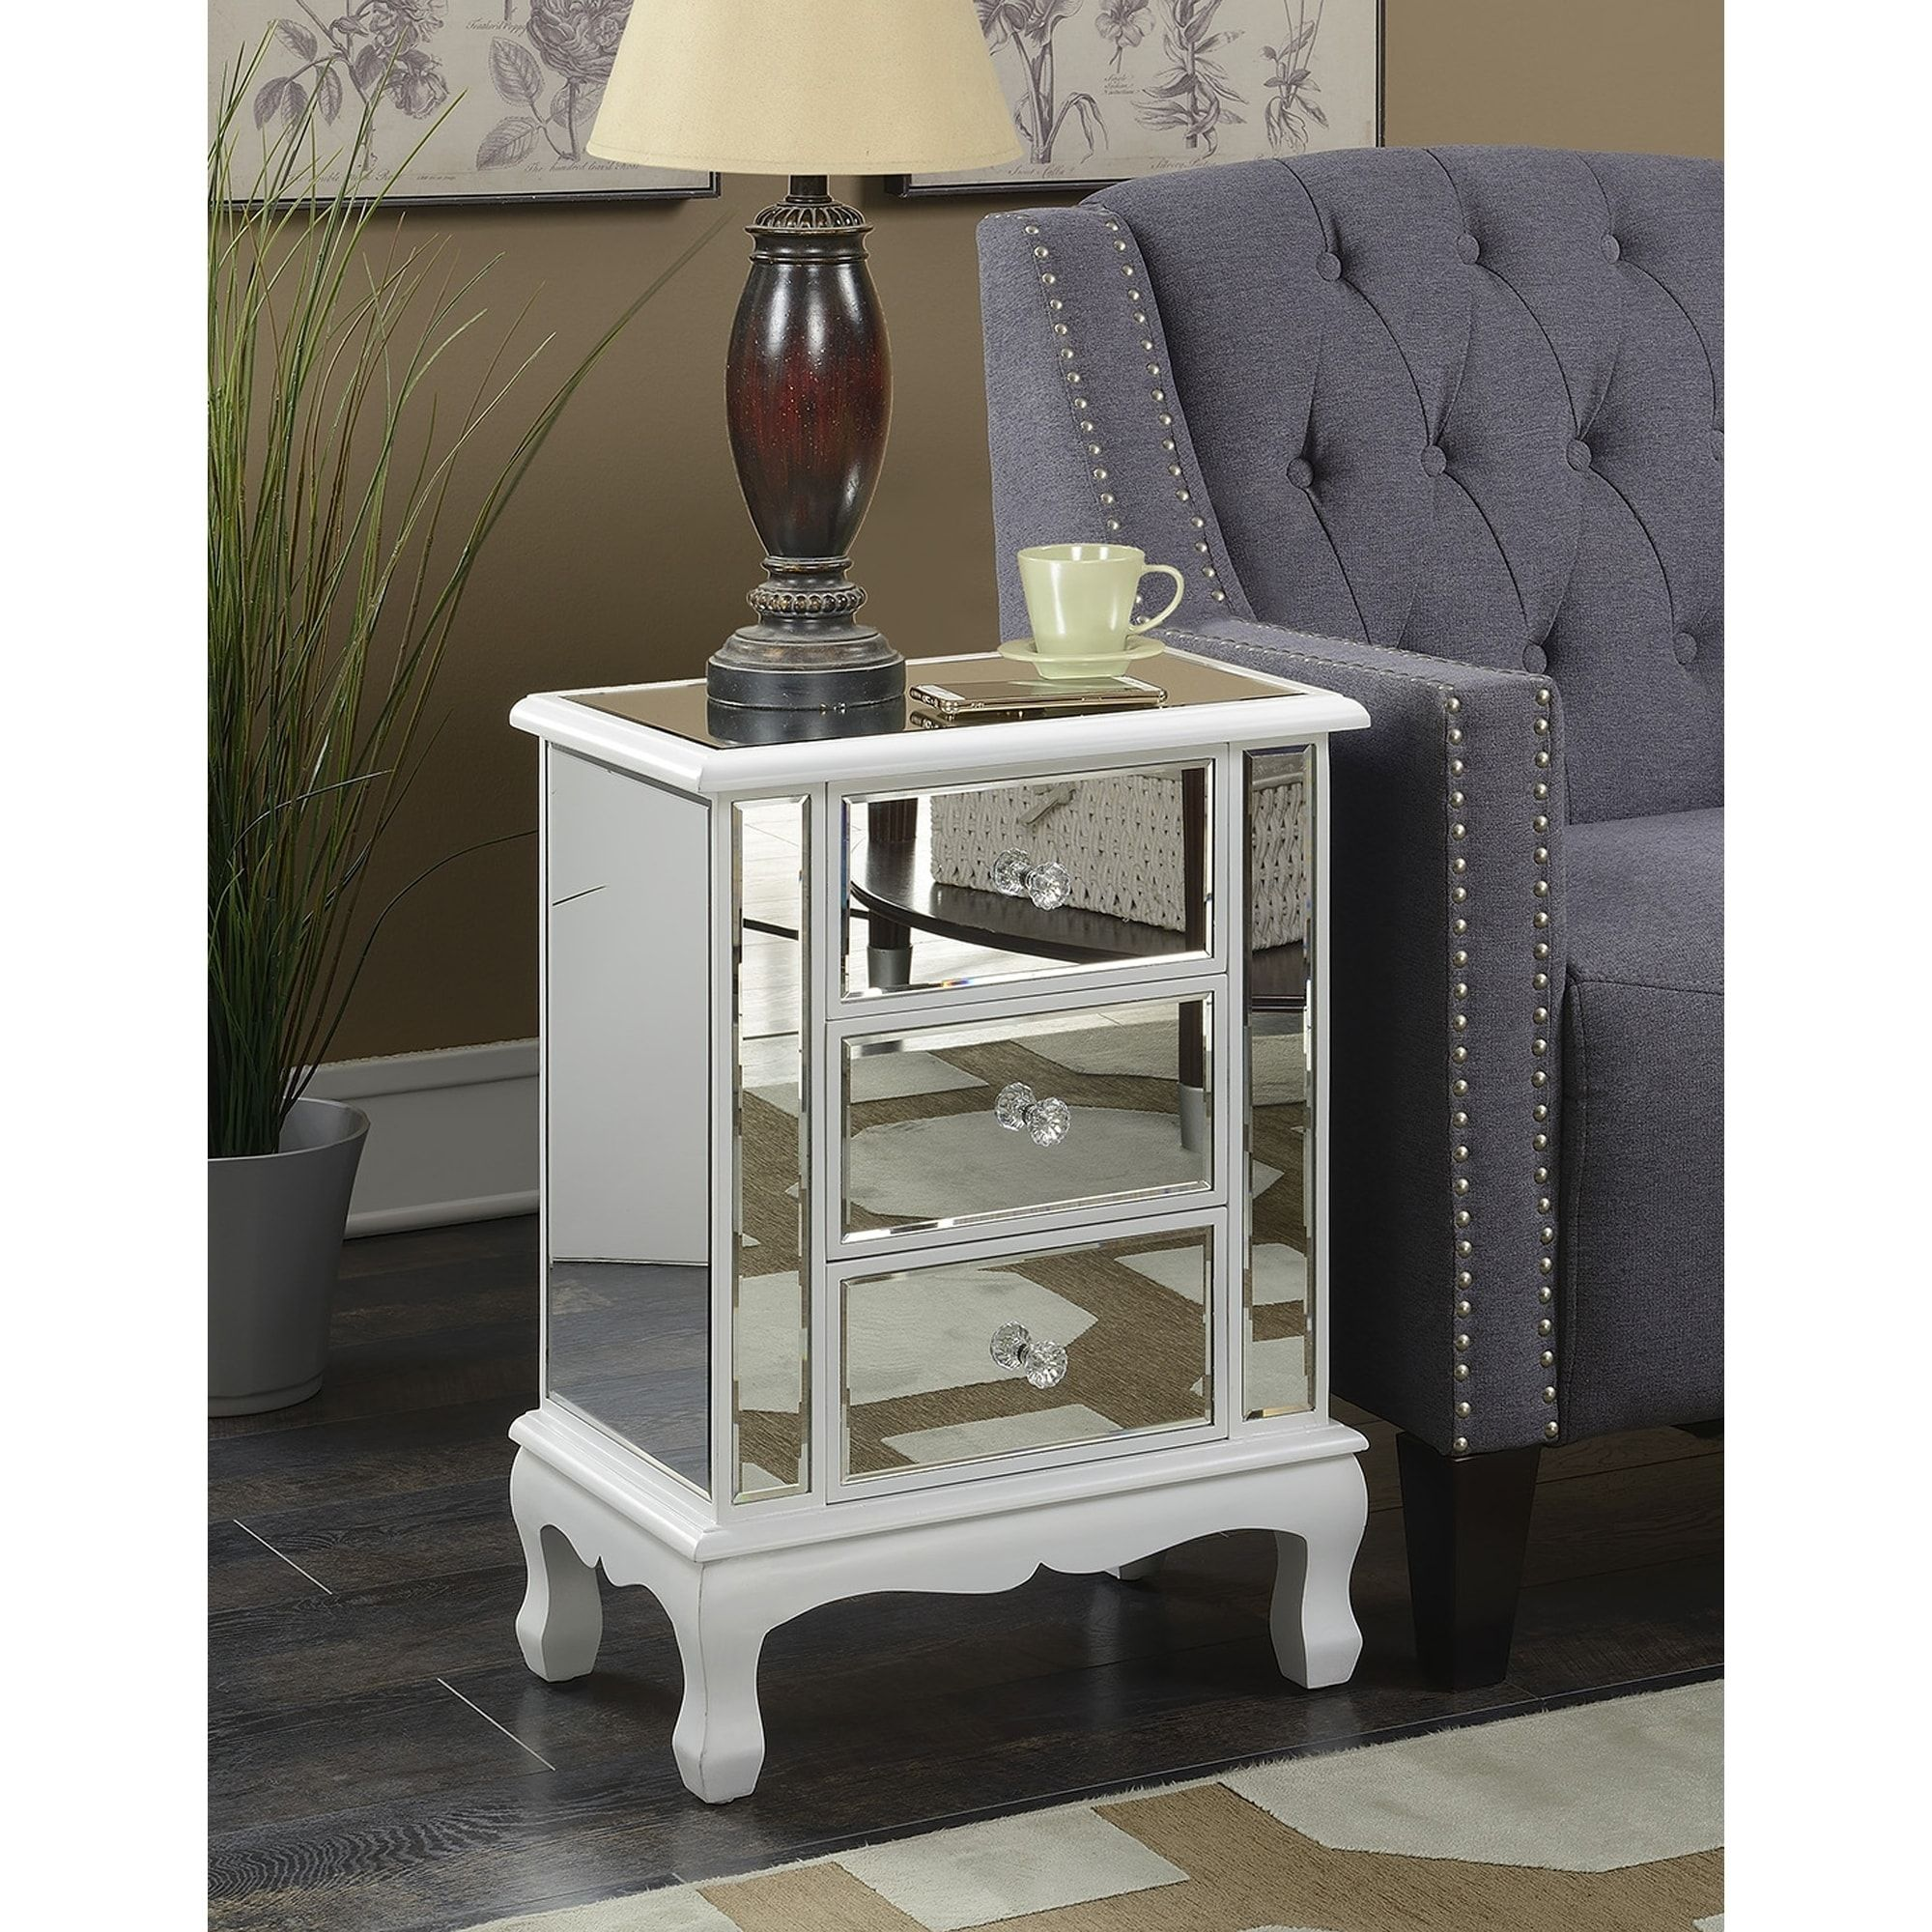 Overstock Com Online Shopping Bedding Furniture Electronics Jewelry Clothing More Mirrored End Table End Tables With Storage White Furniture Living Room